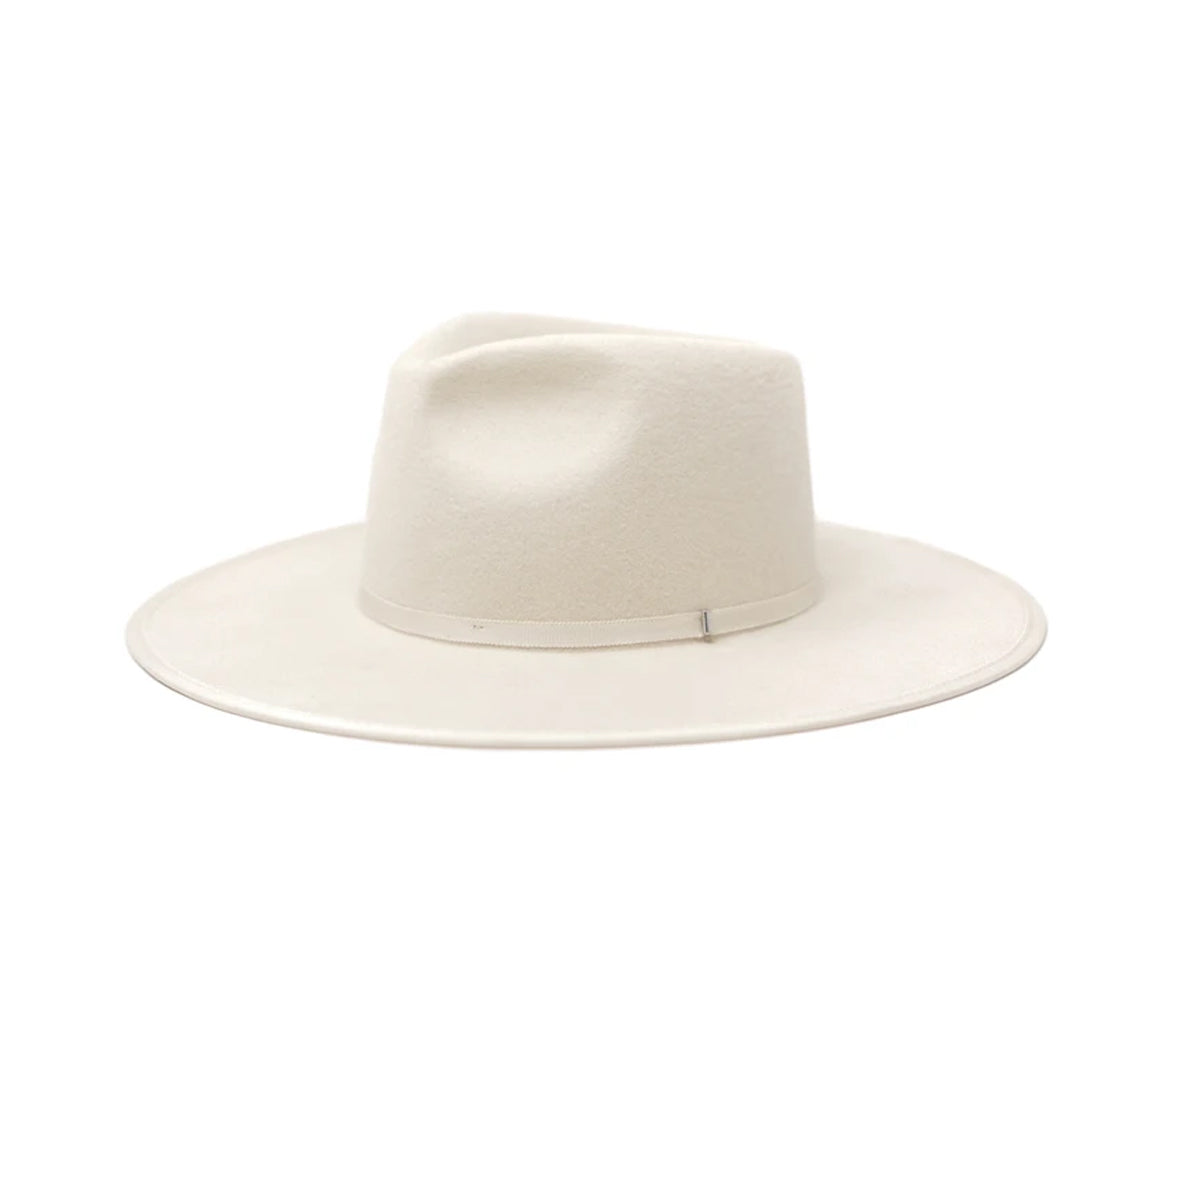 Olive & Pique Women's Billie Wool Rancher Hat - White